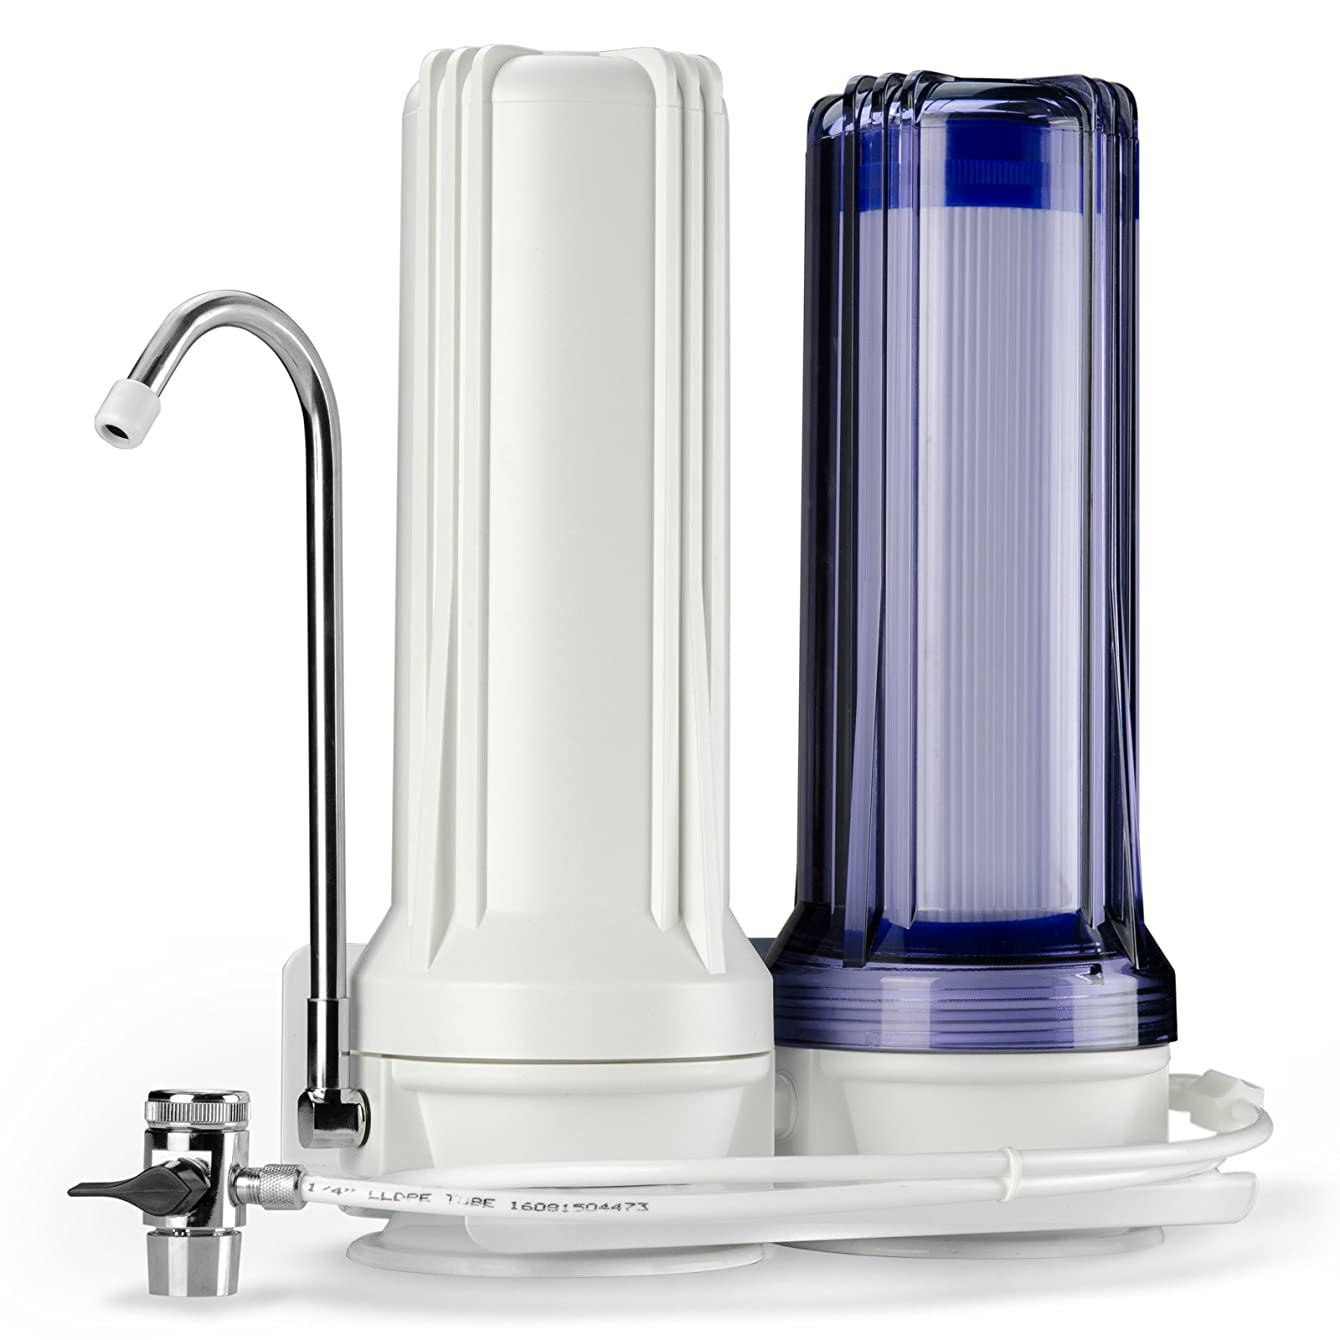 iSpring CKC2 High Output 2 Stage Countertop Water Filtration Dispenser System- Includes Activated Carbon and Carbon Block Filters ejczampiiurqy24